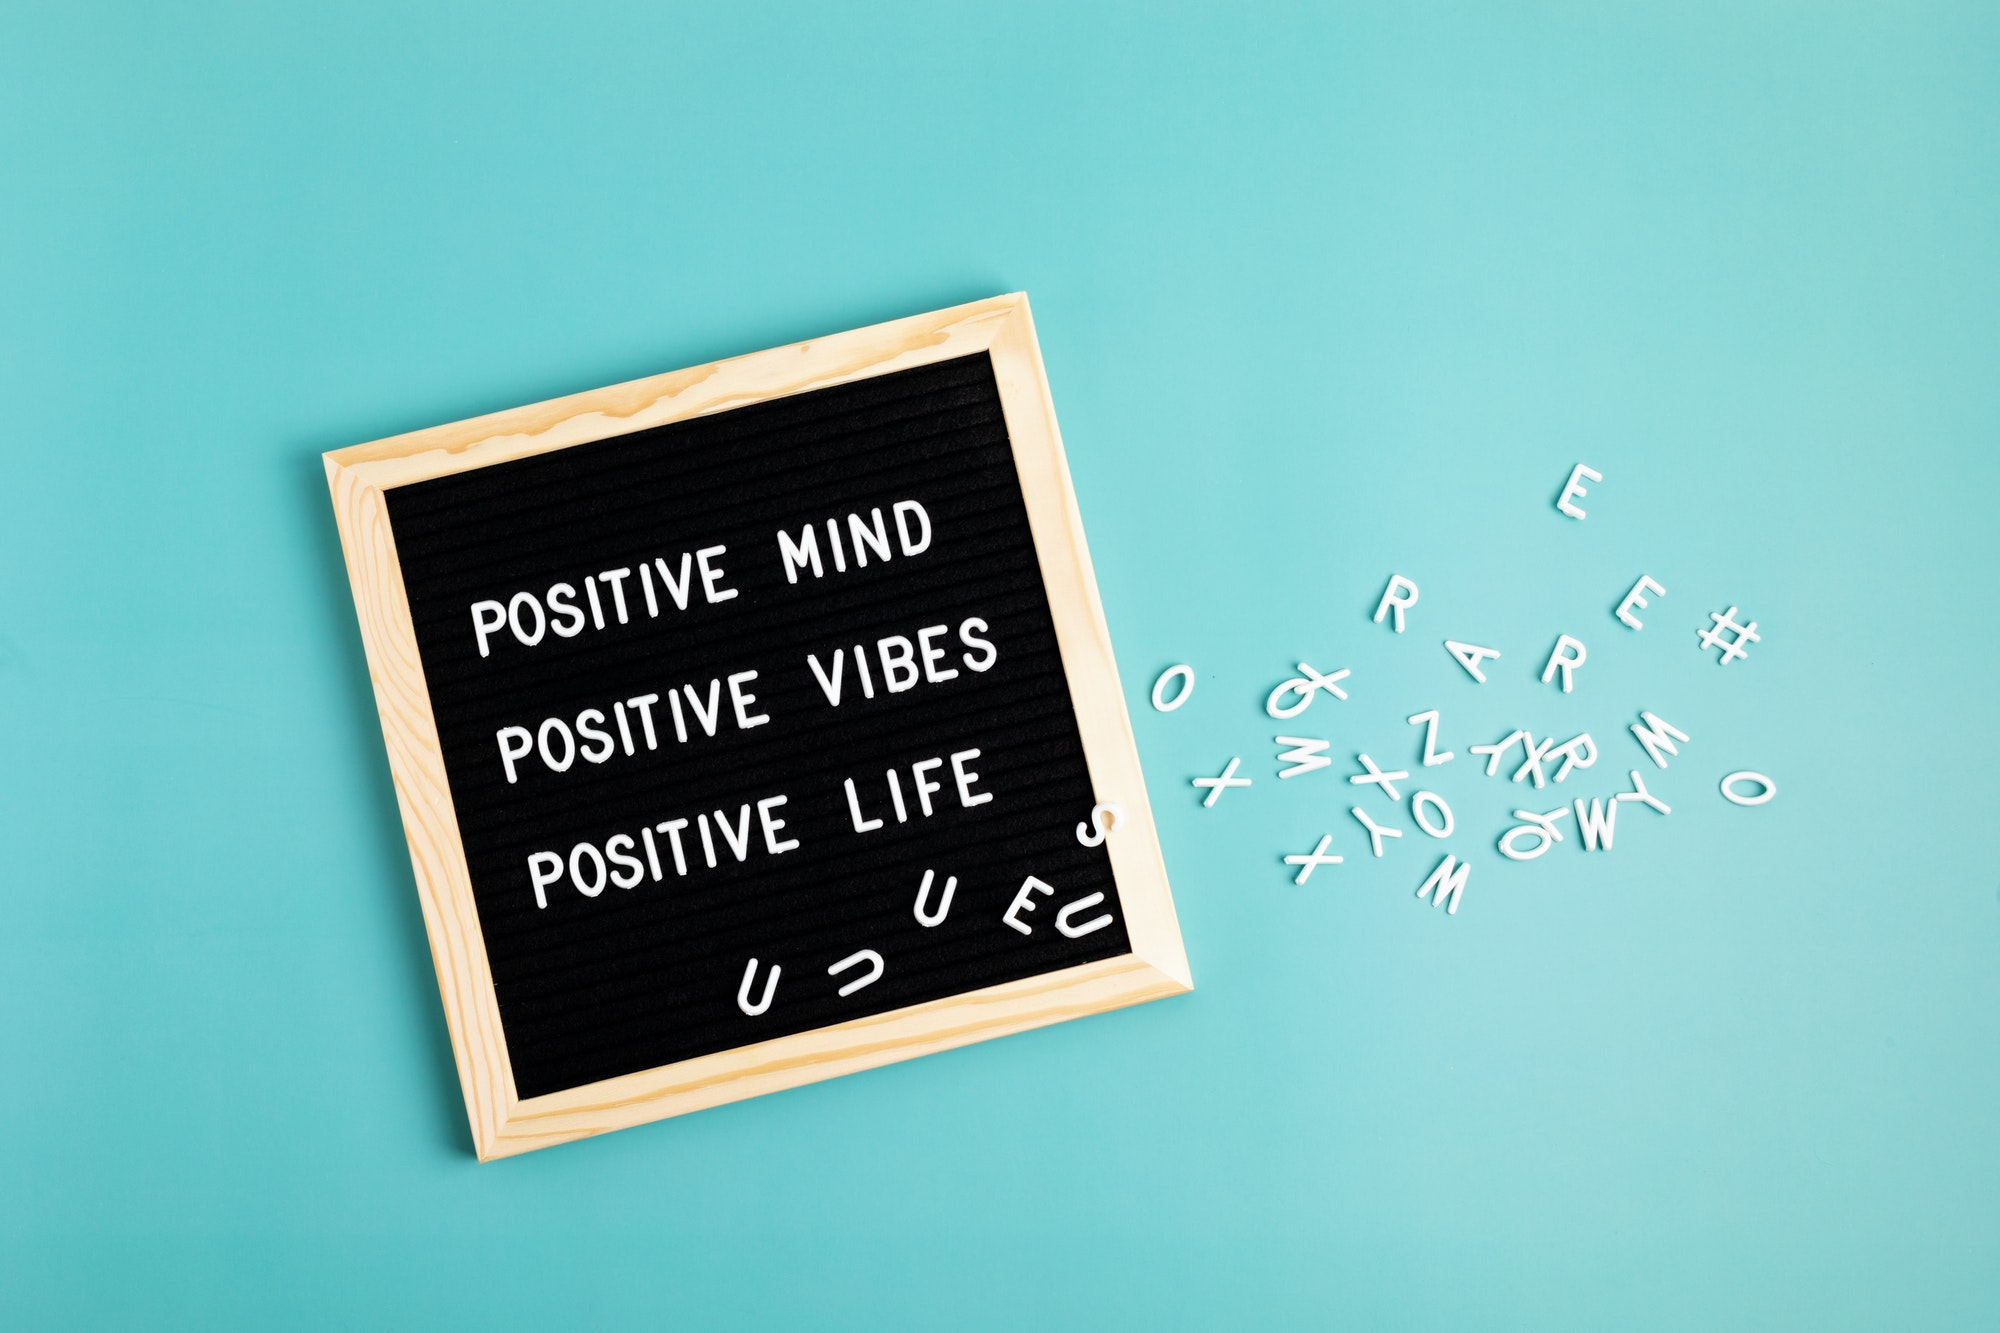 Positive mind, positive vibes, positive life motivational quote on the letter board. Inspiration